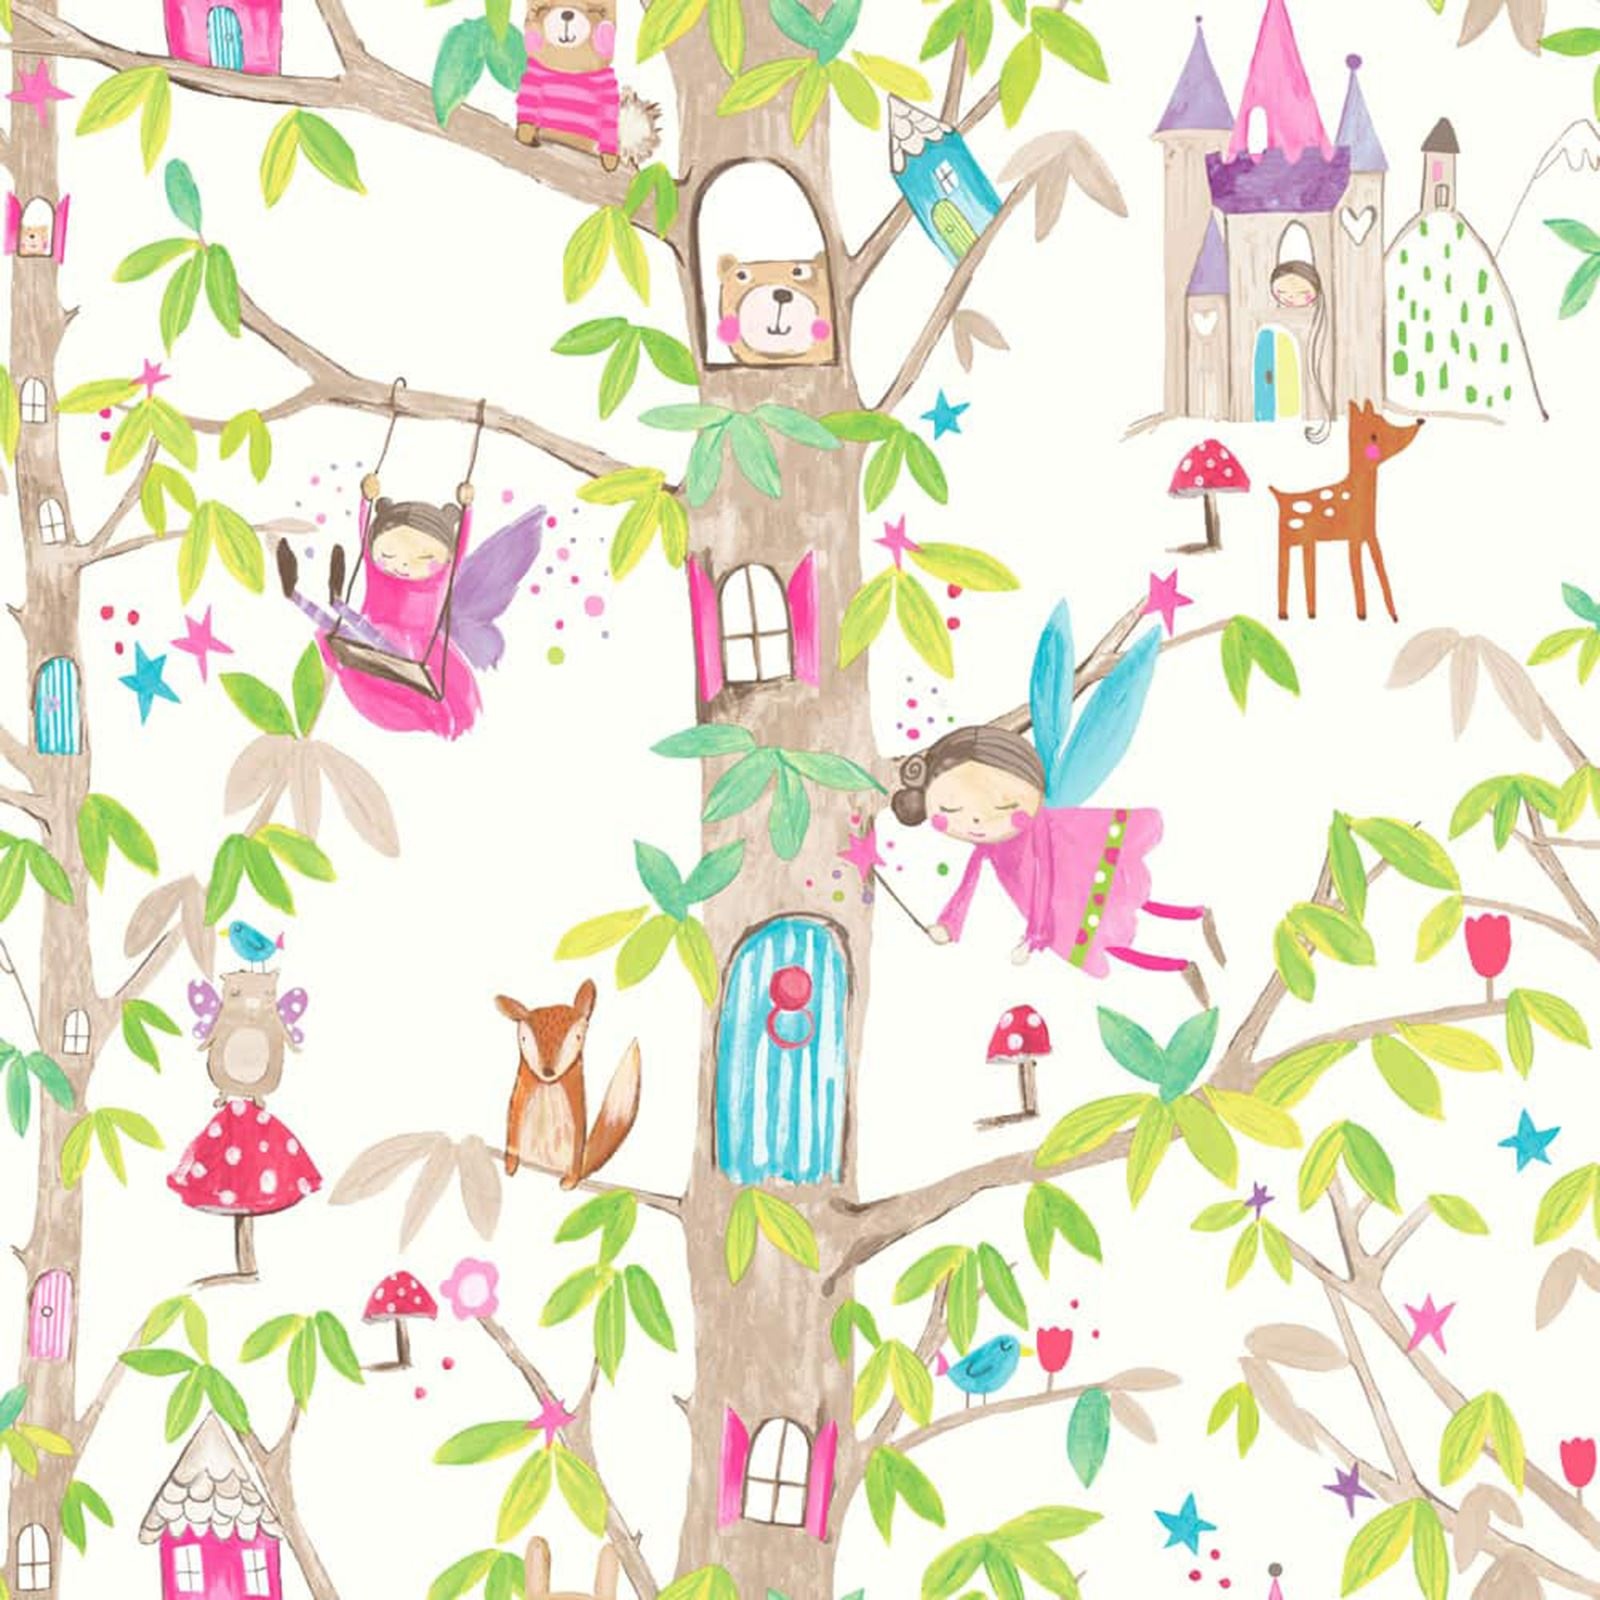 Captivating ARTHOUSE GLITTER DETAIL KIDS GIRLS BEDROOM WALLPAPER FEATURE